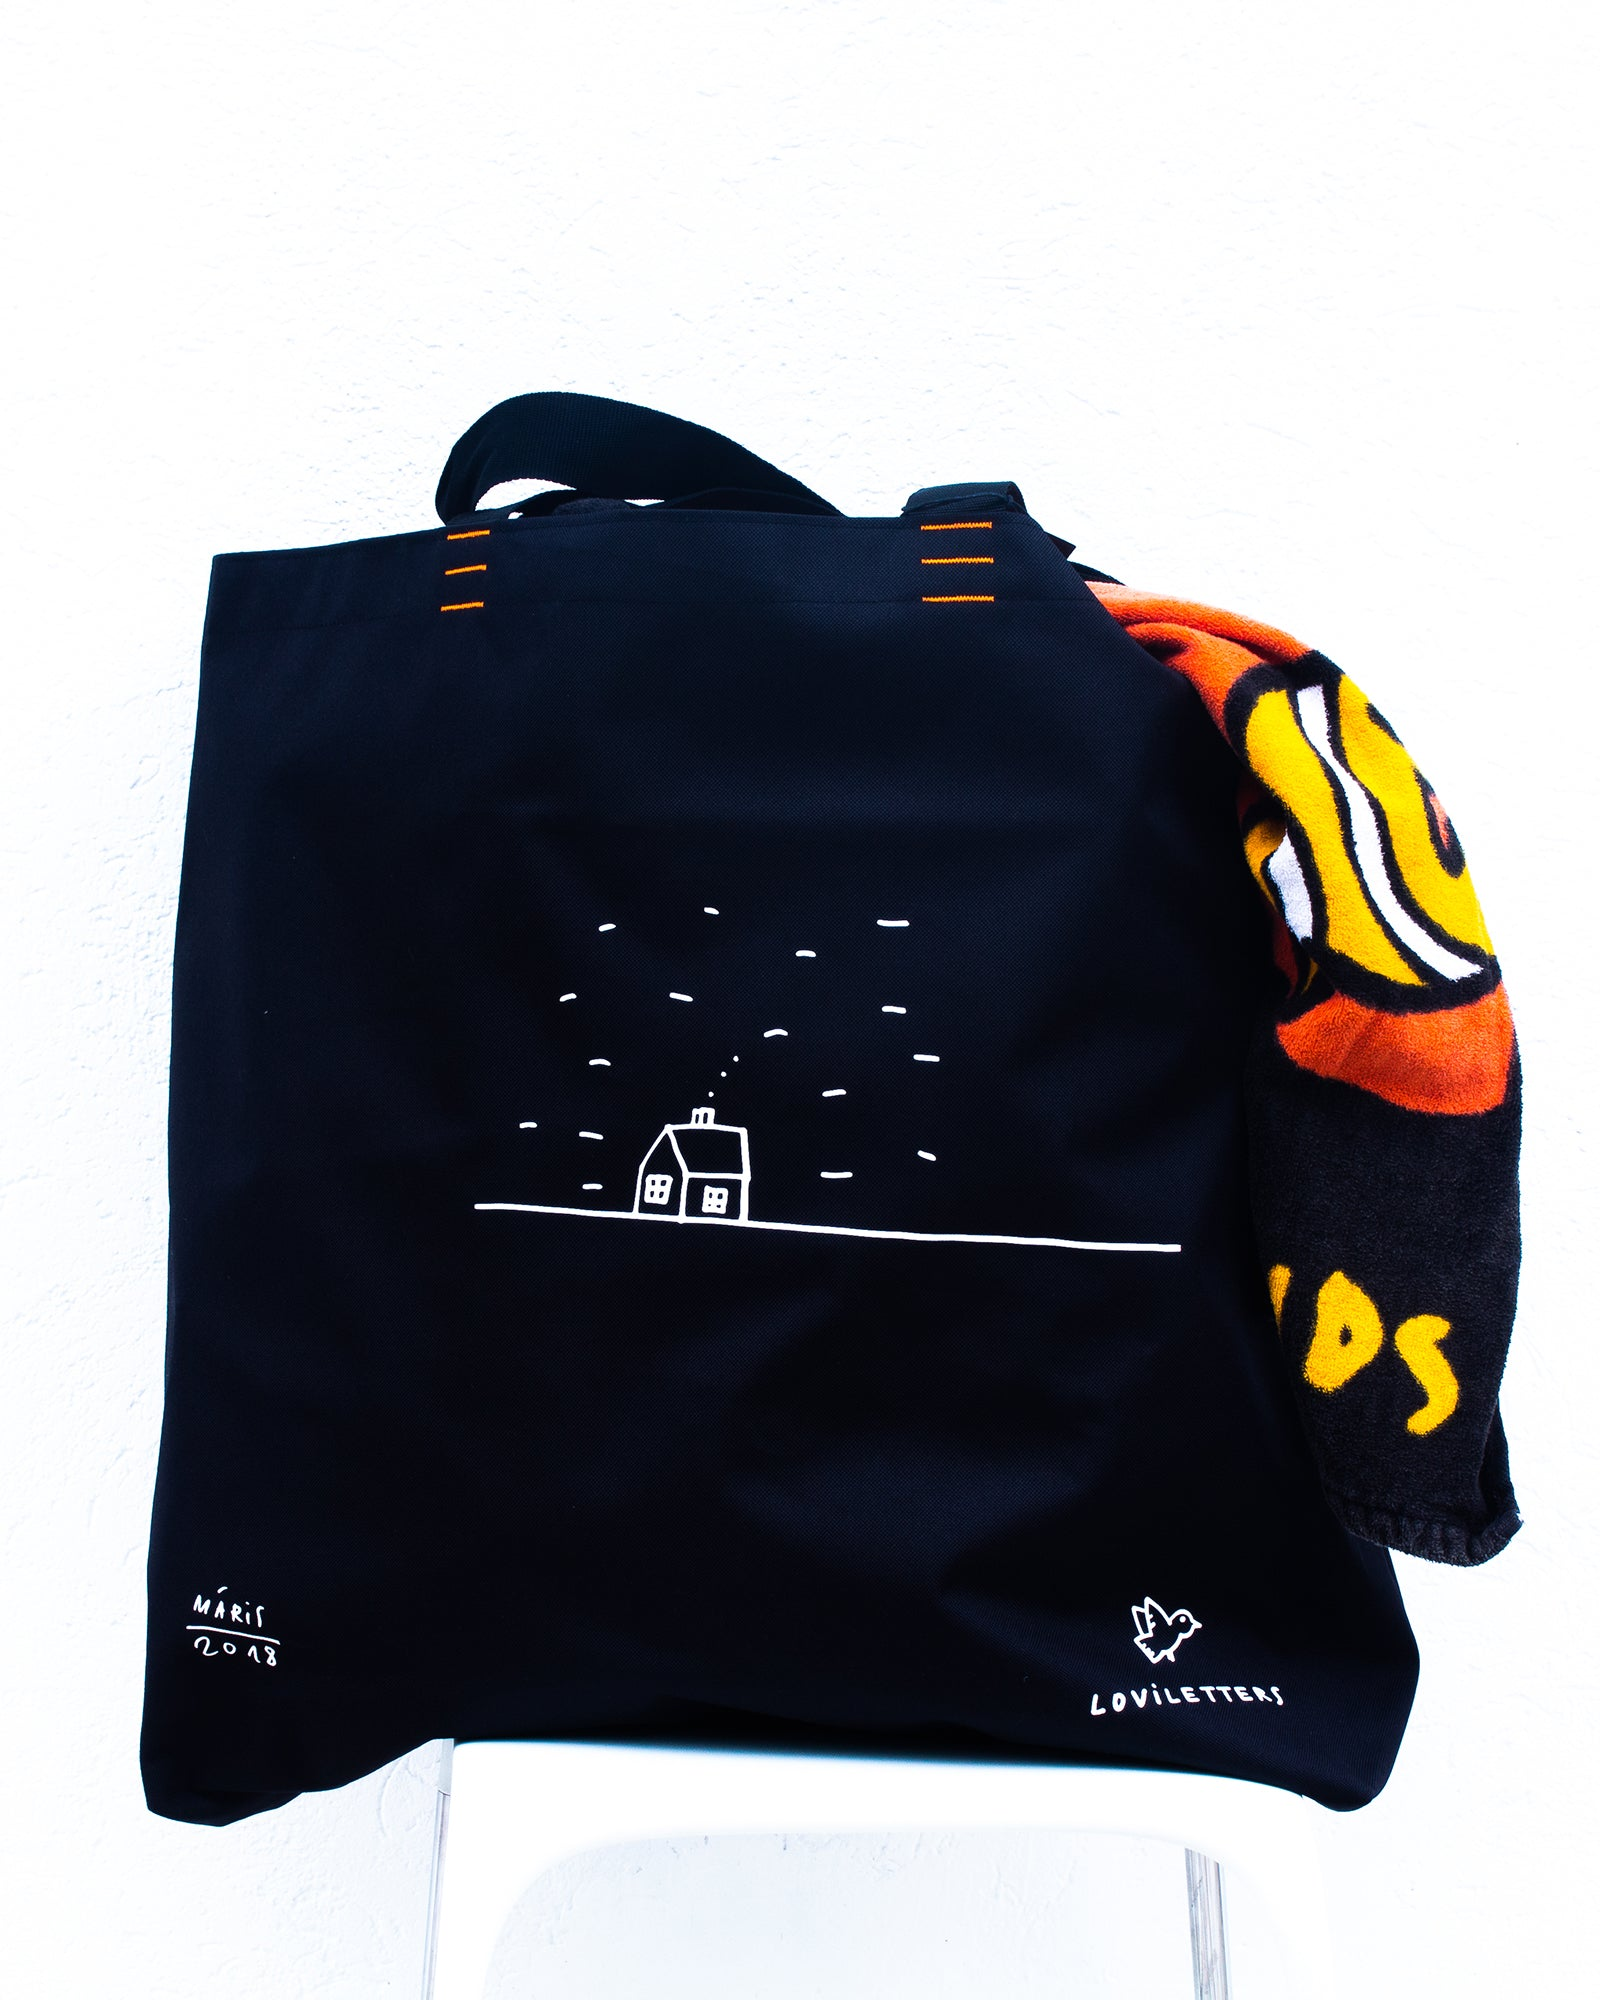 BIGBLACK BAG, design No 2